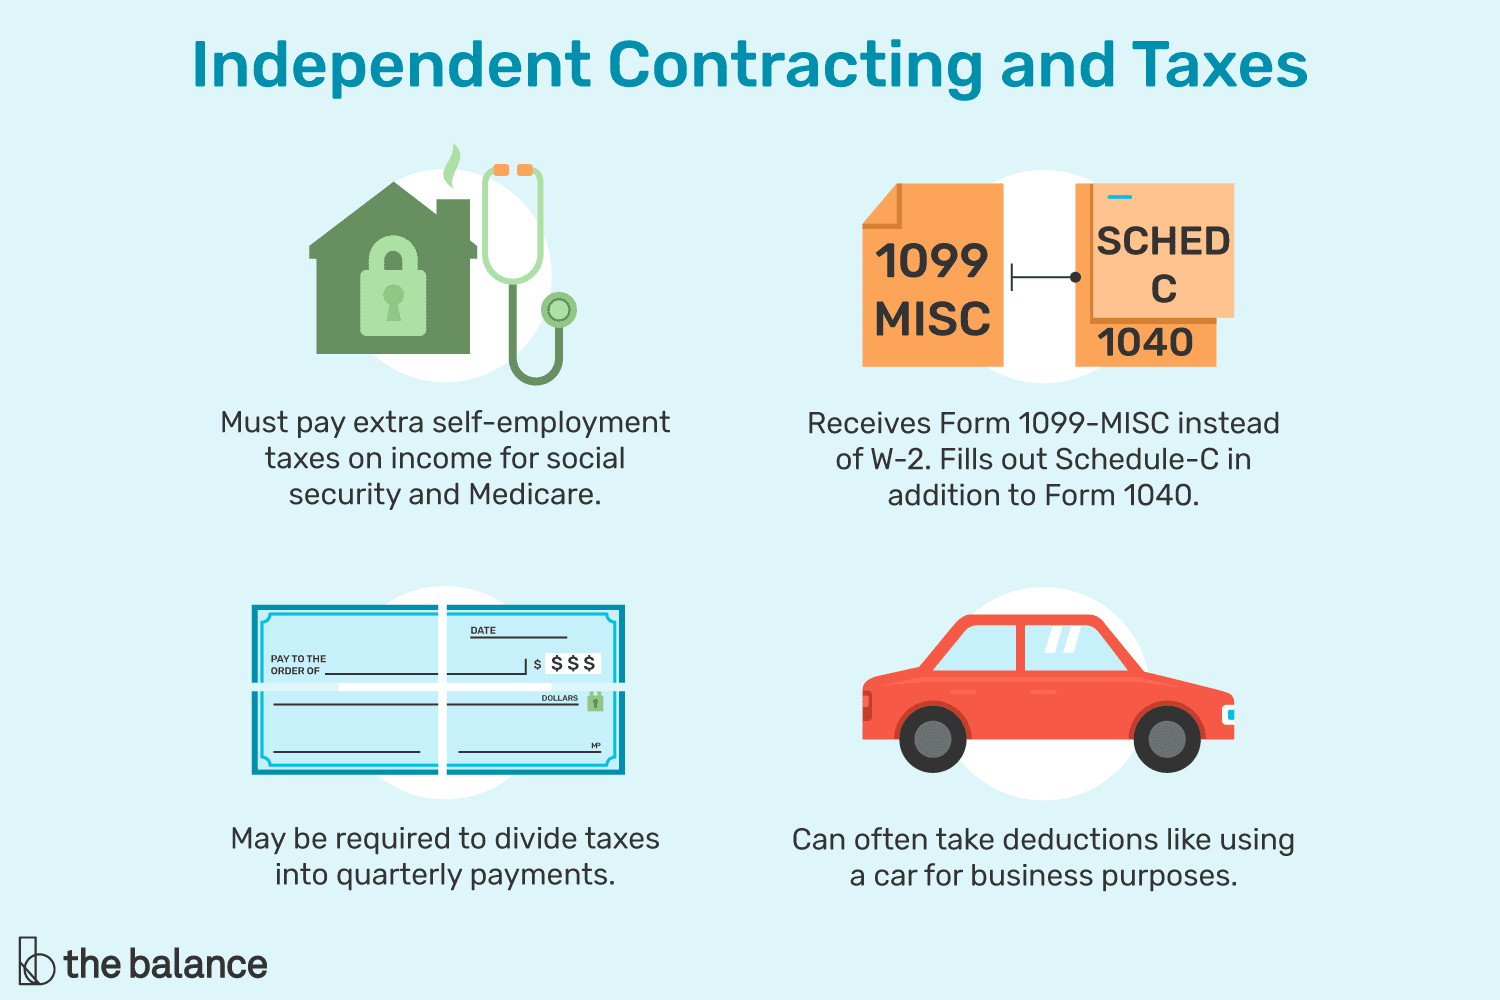 Infographic depicting how to pay and report taxes.